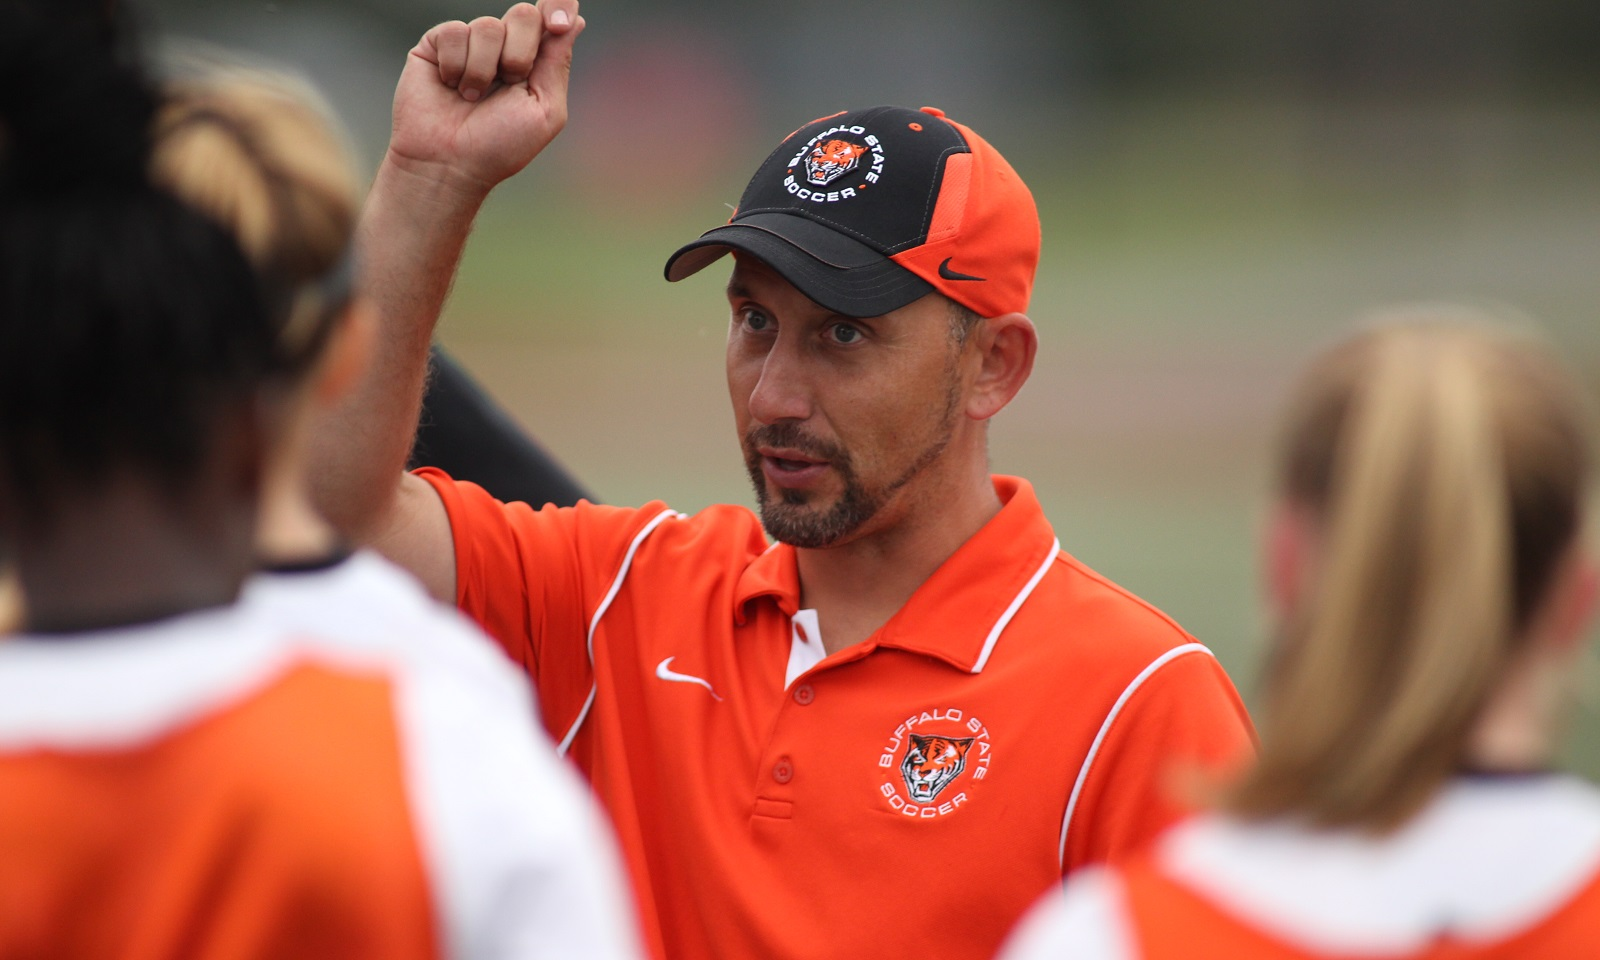 Buffalo State women's soccer head coach Nick DeMarsh is in his 15th season with the program. (Buffalo State Athletics)